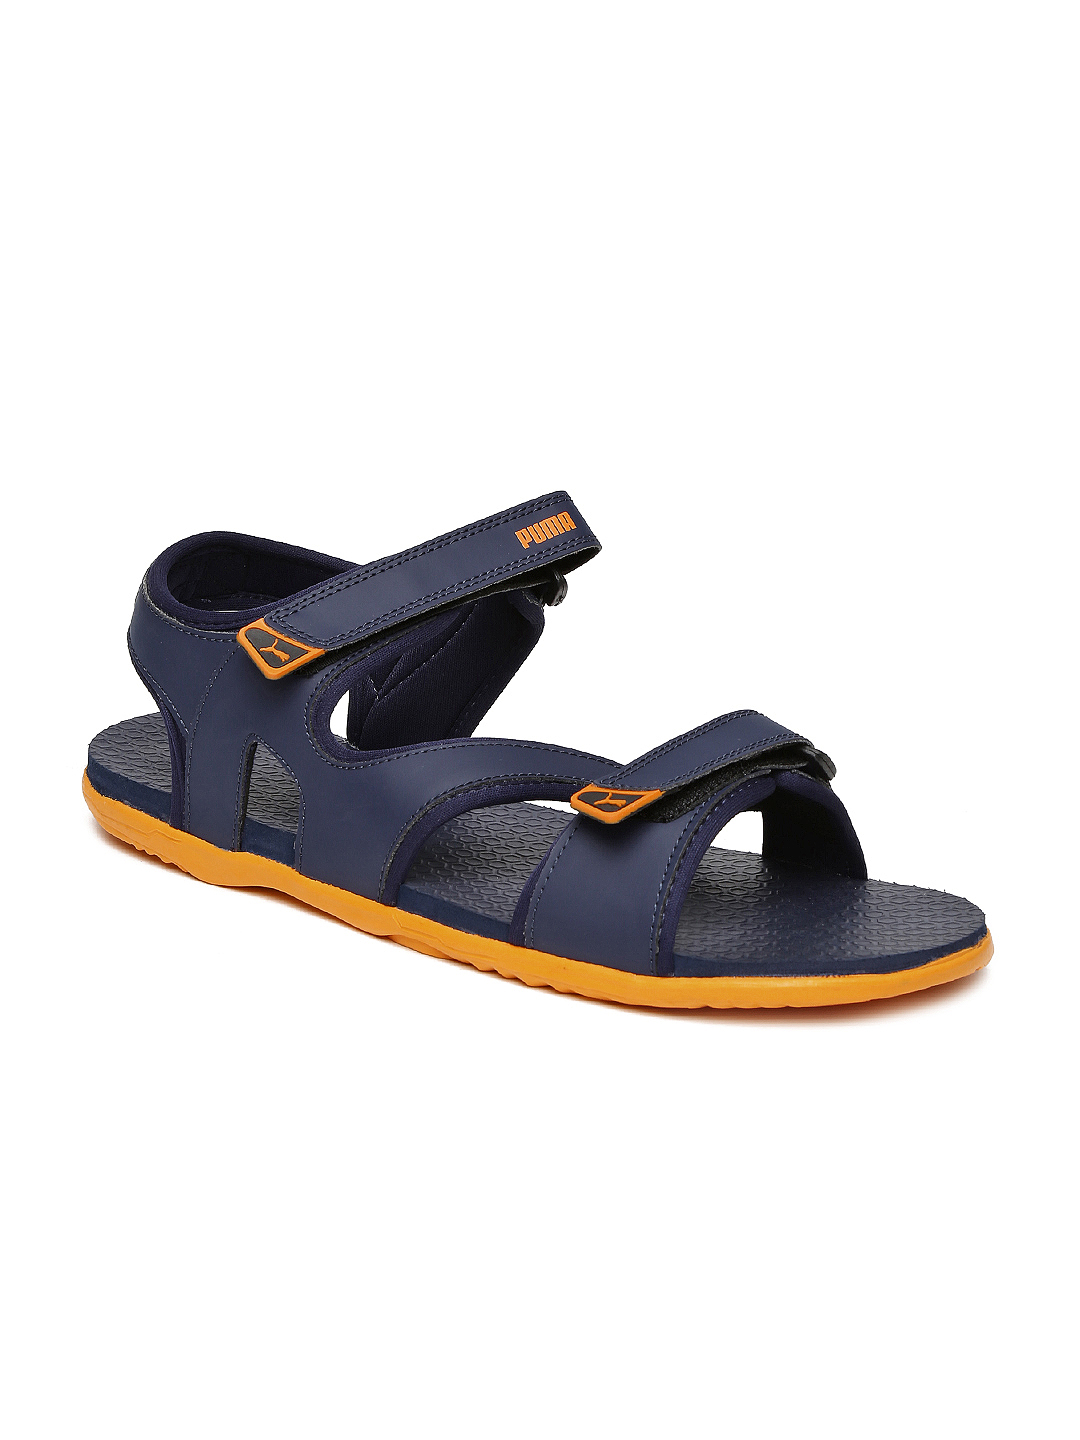 Puma sandals –Tips To Buy Sandals Online